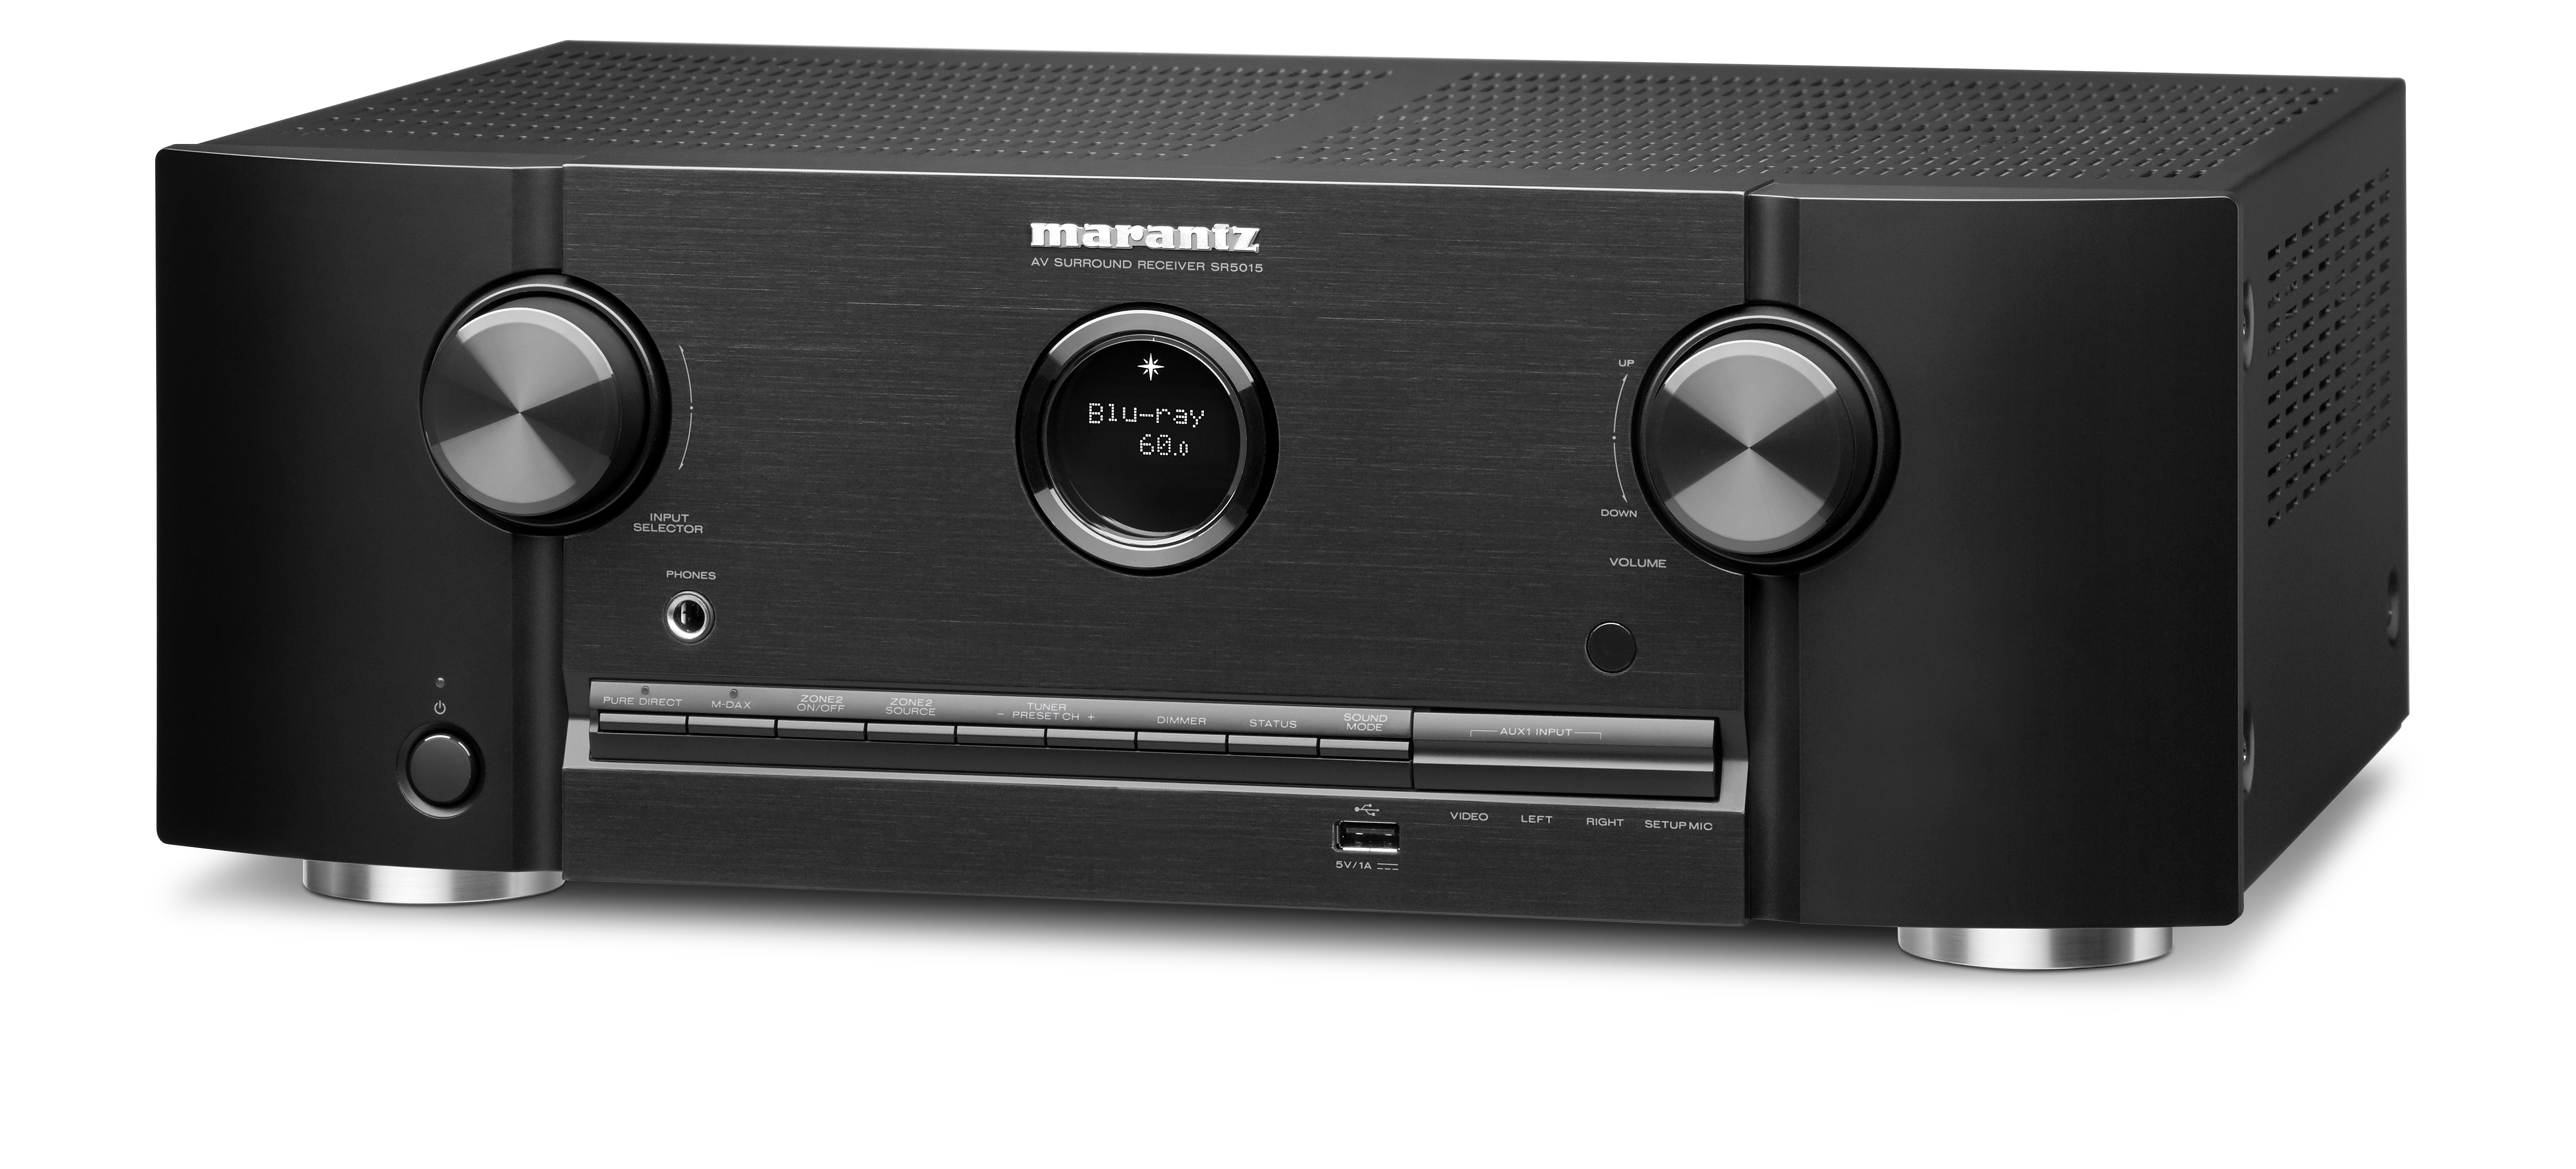 Marantz SR5015 AVR home theater reciever